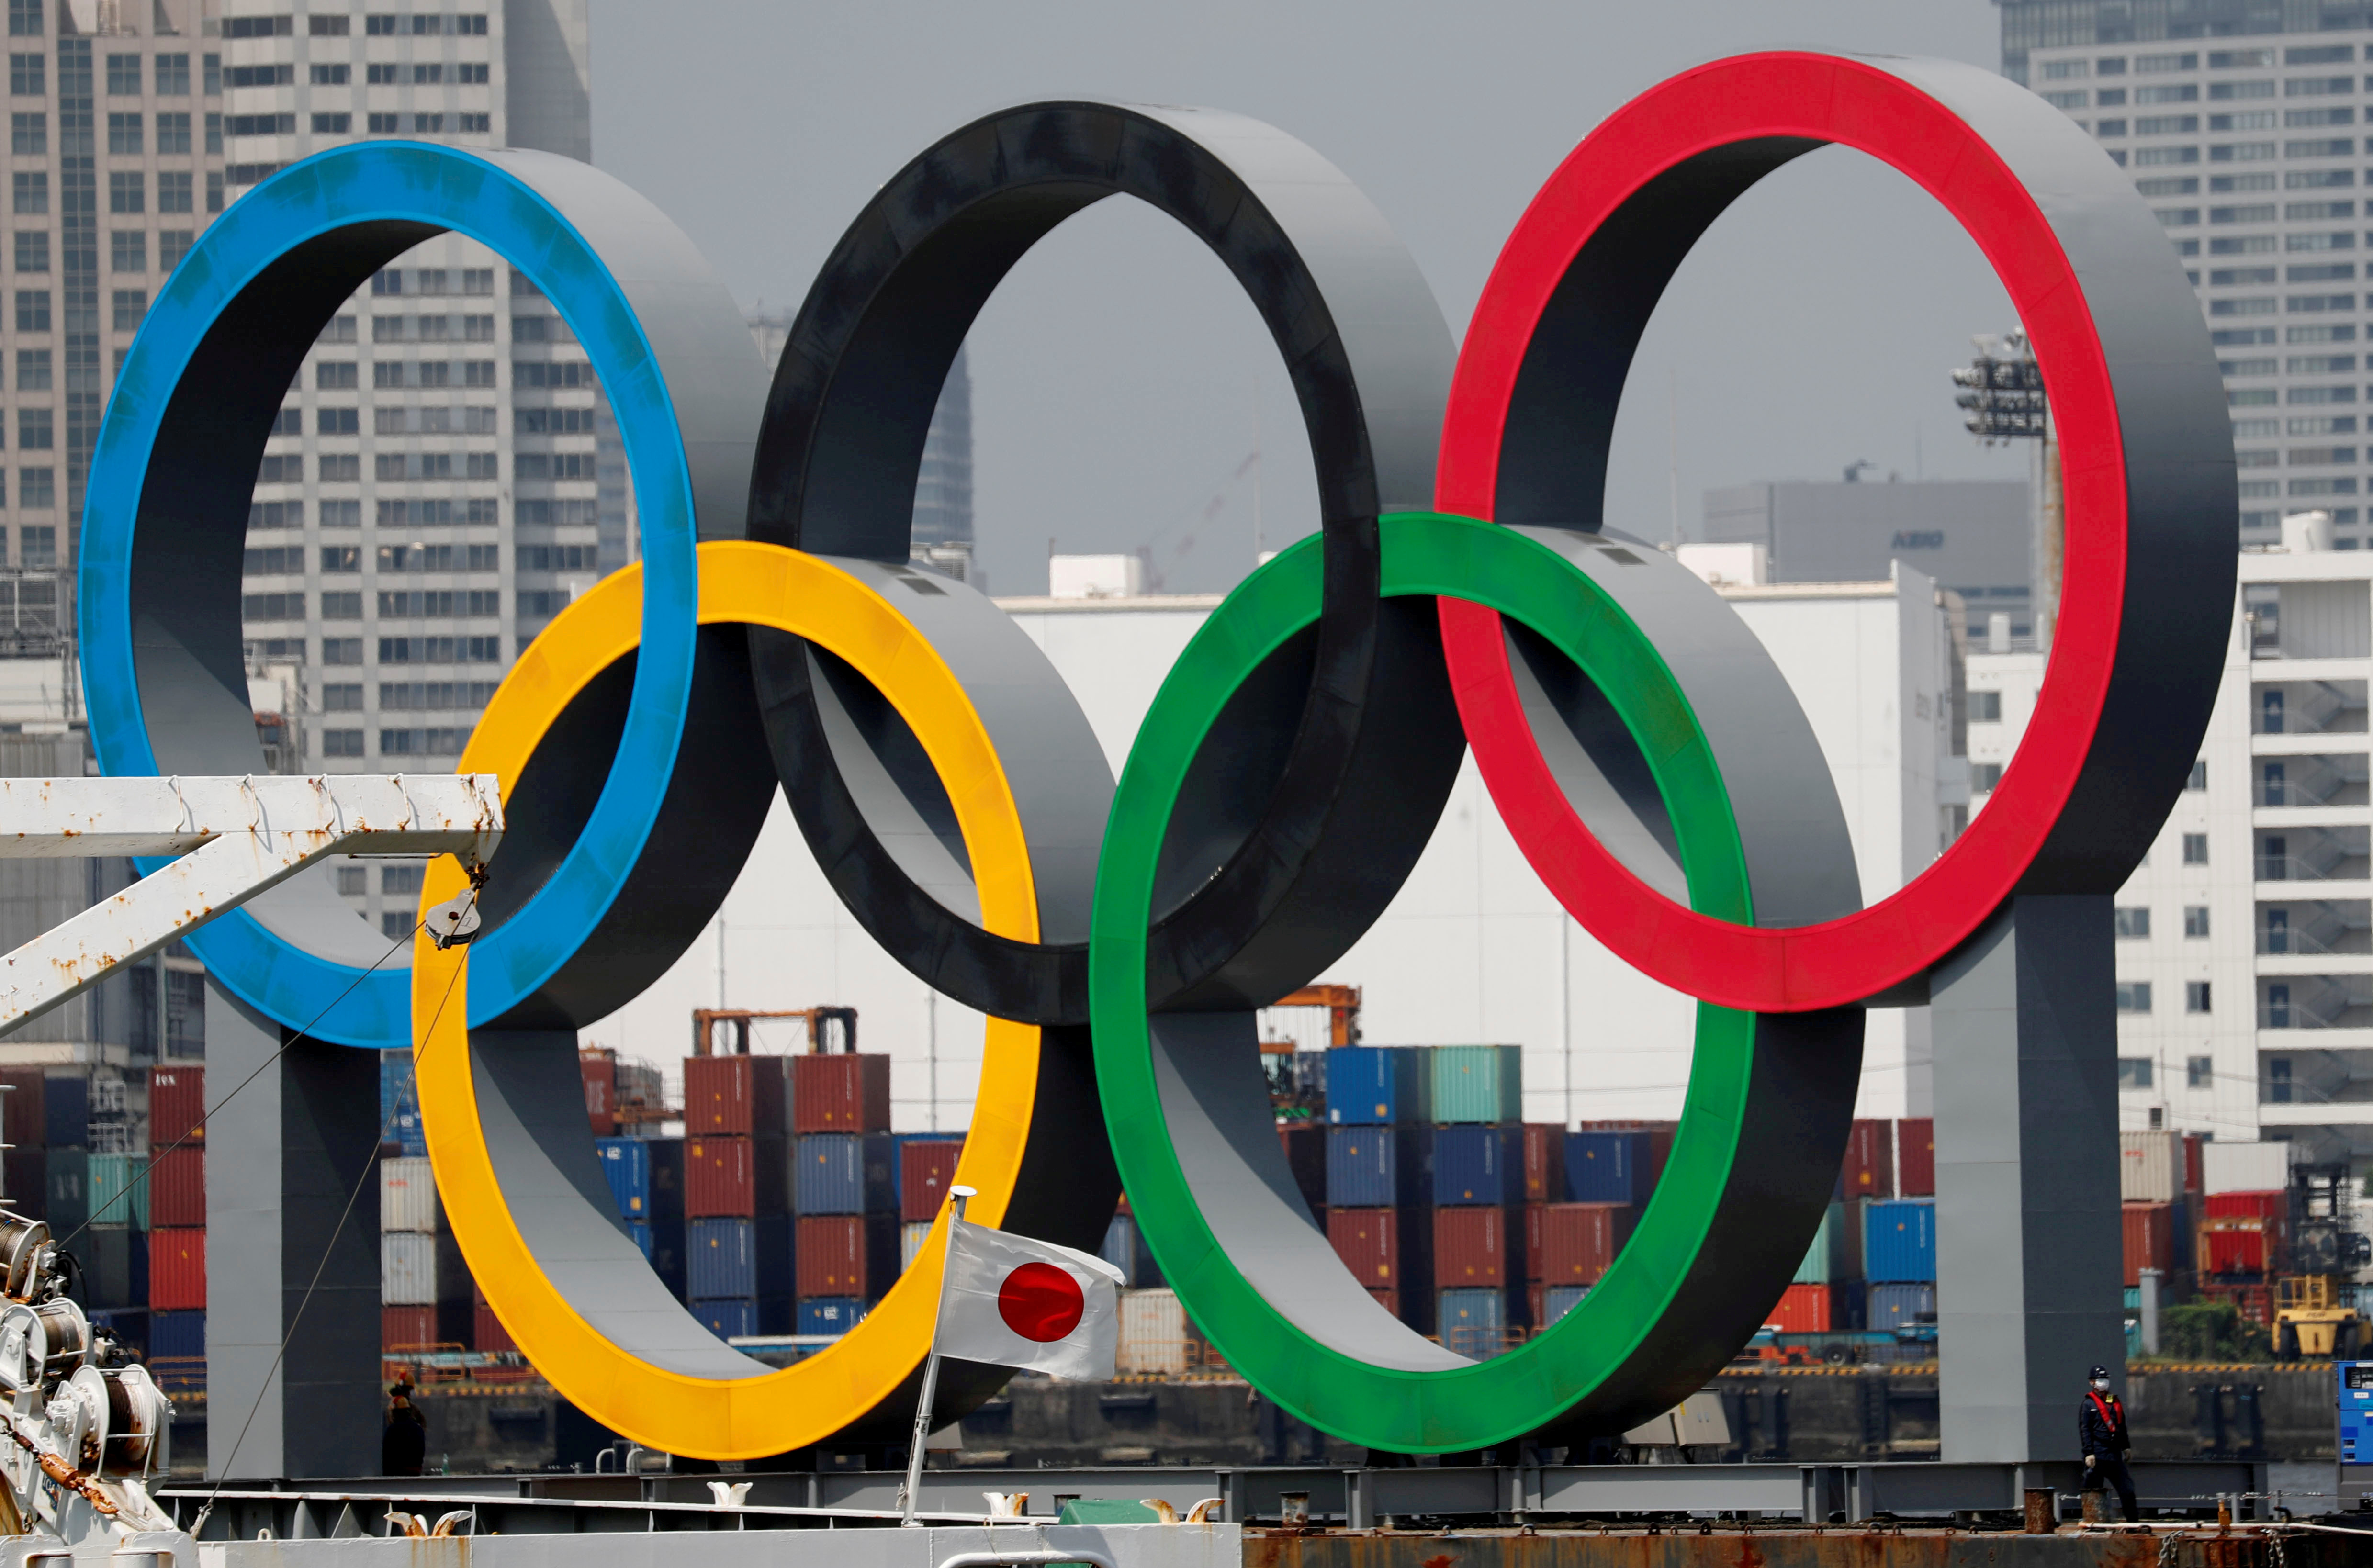 The giant Olympic rings are seen behind Japan's national flag amid the coronavirus disease (COVID-19) outbreak, at the waterfront area at Odaiba Marine Park in Tokyo, Japan August 6, 2020. REUTERS/Kim Kyung-Hoon/File Photo